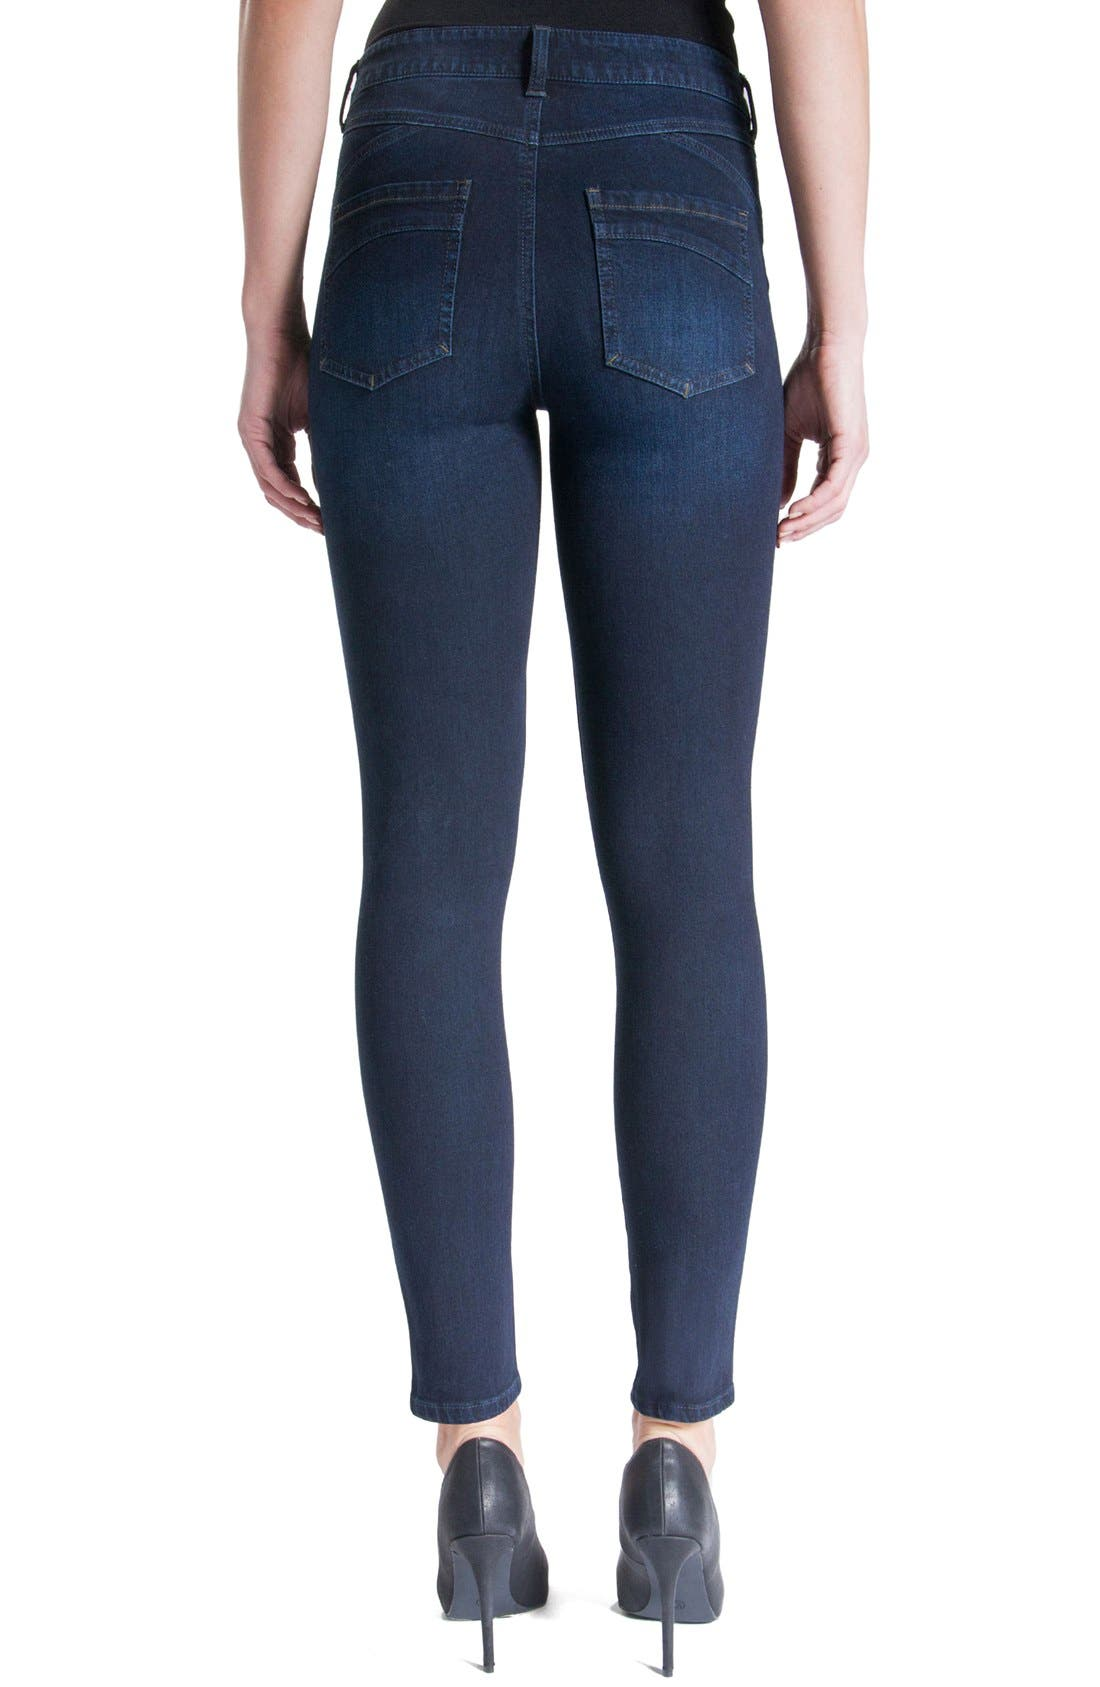 Jeans Company Piper Hugger Lift Sculpt Ankle Skinny Jeans,                             Alternate thumbnail 12, color,